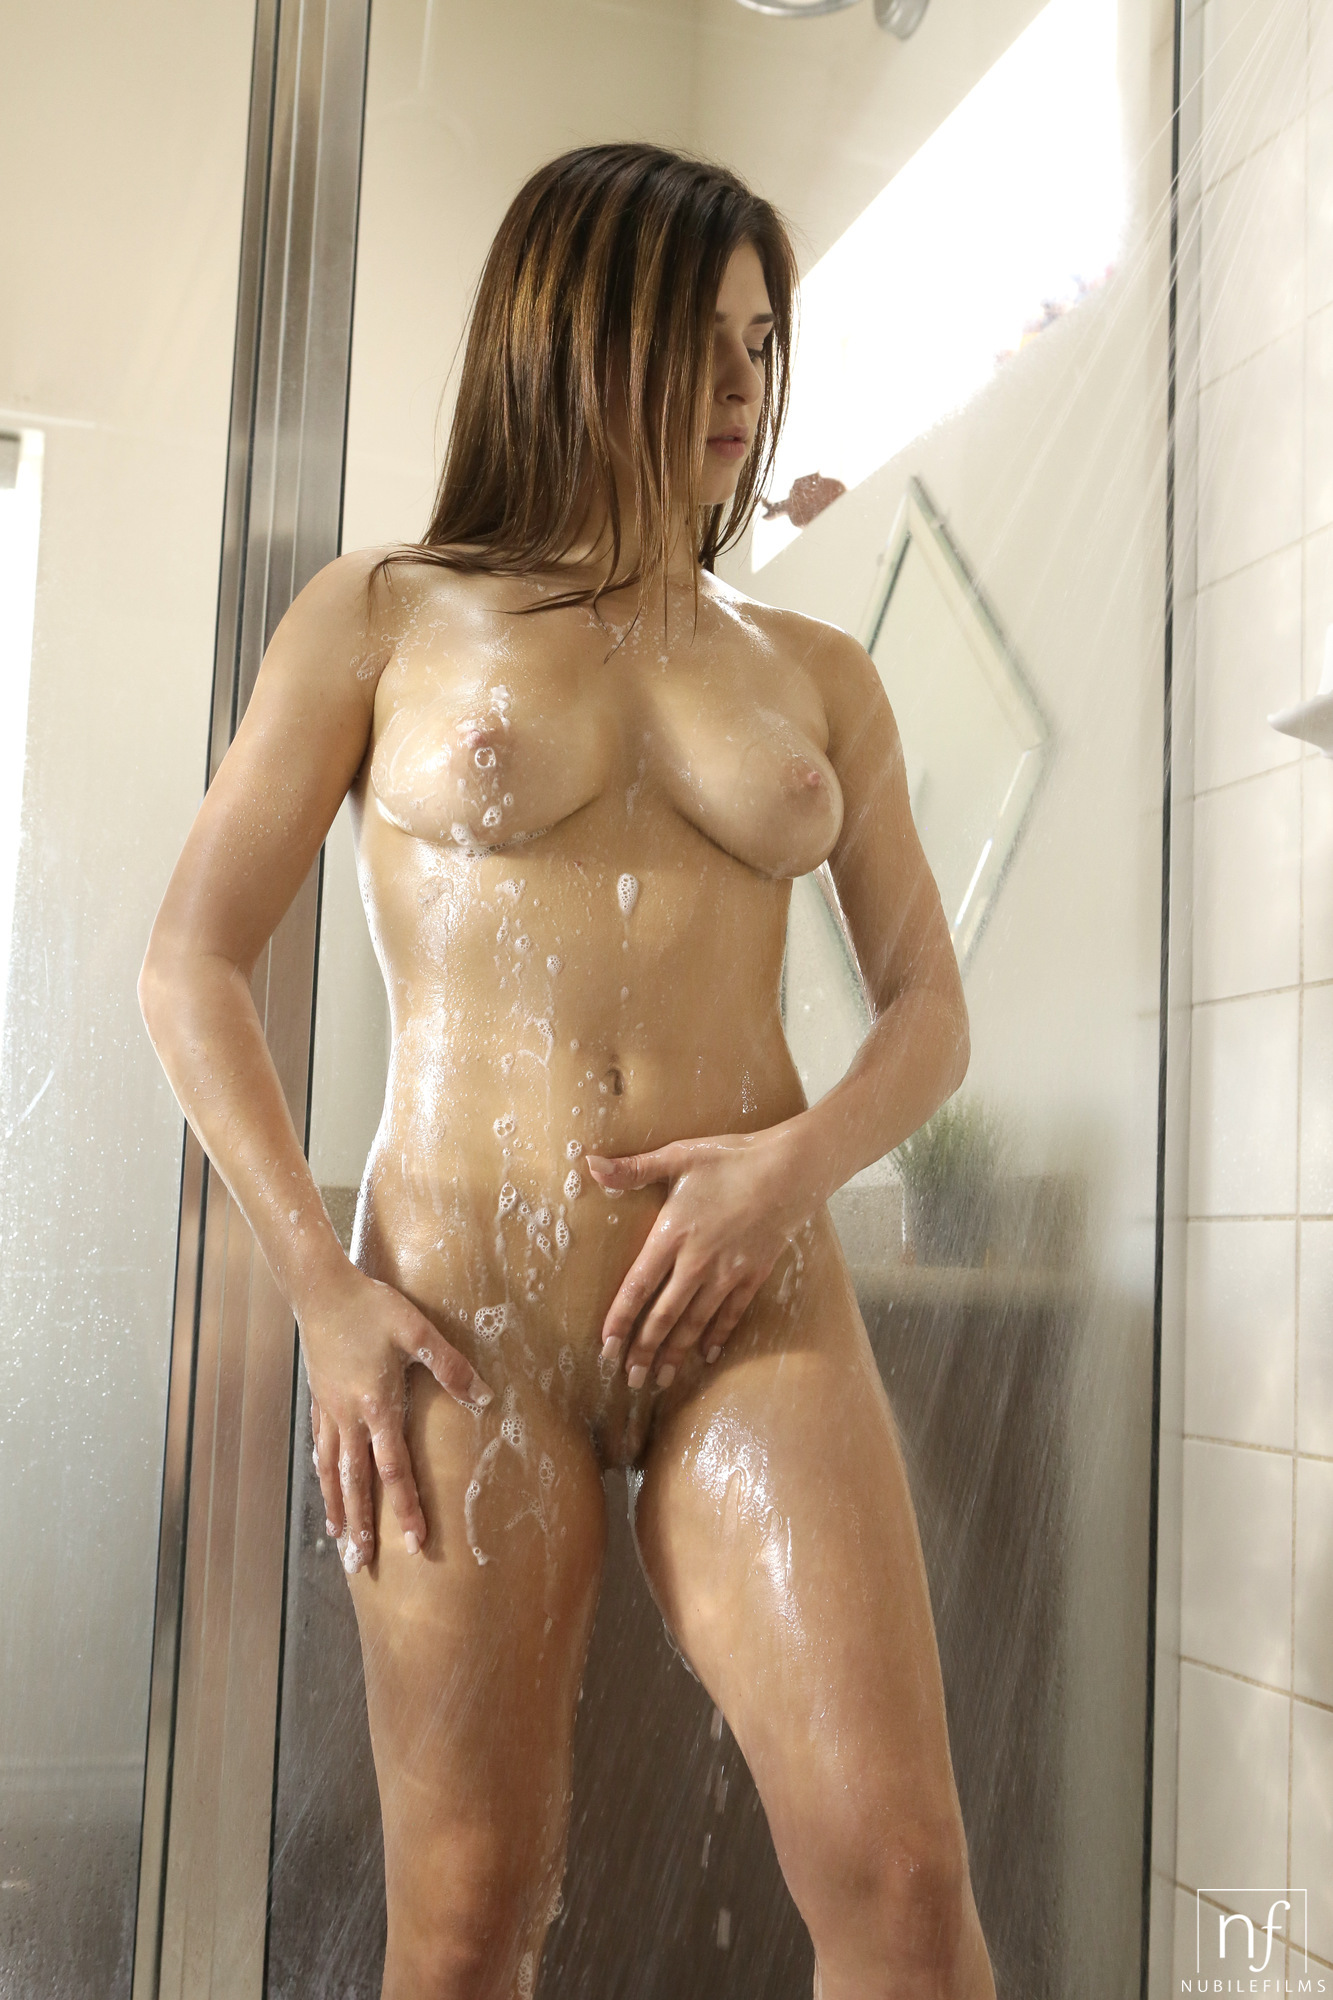 Nude models in the shower wet — pic 7